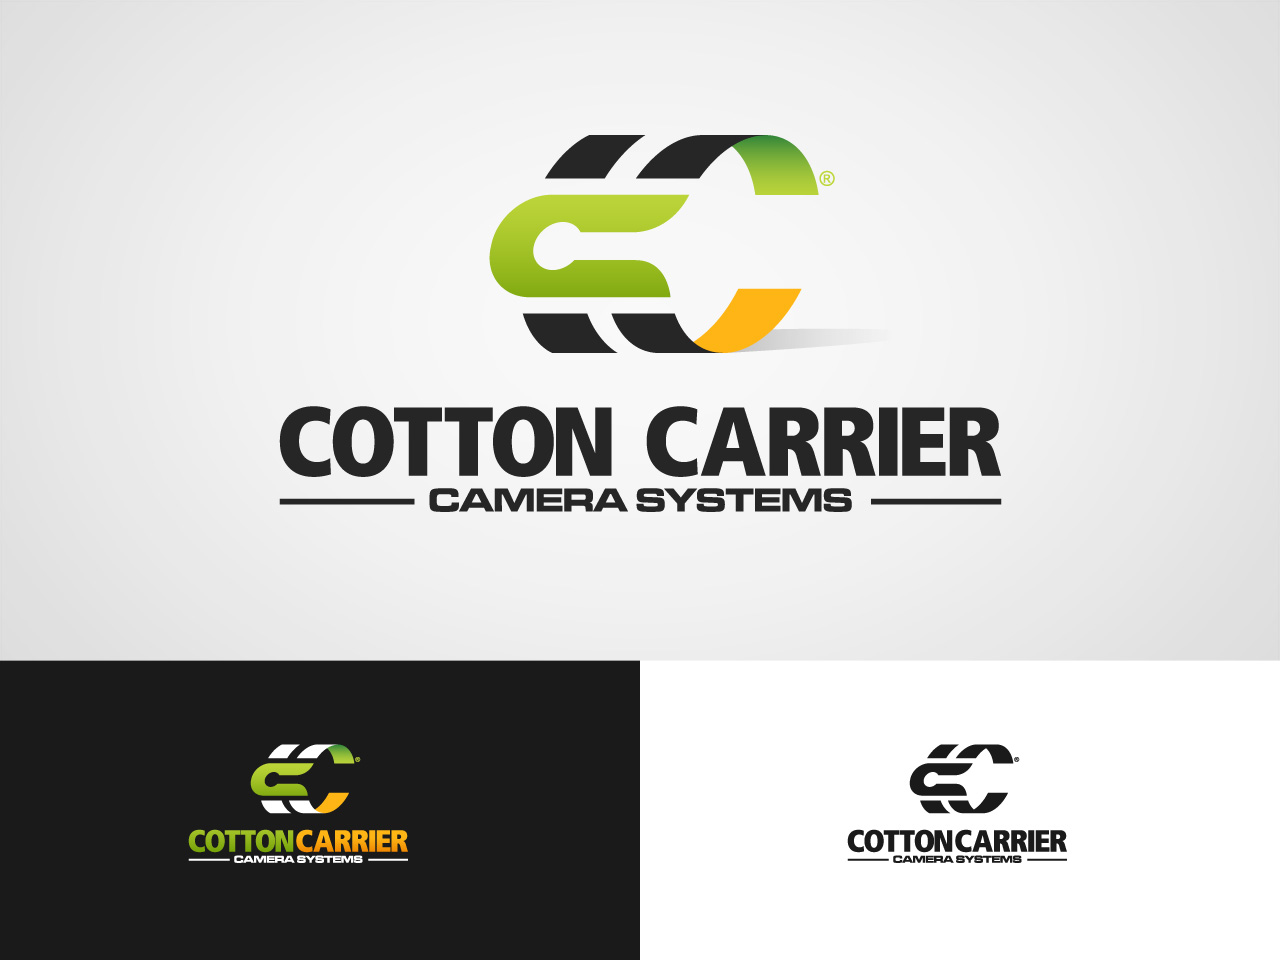 Logo Design by jpbituin - Entry No. 102 in the Logo Design Contest Cotton Carrier Camera Systems Logo Design.